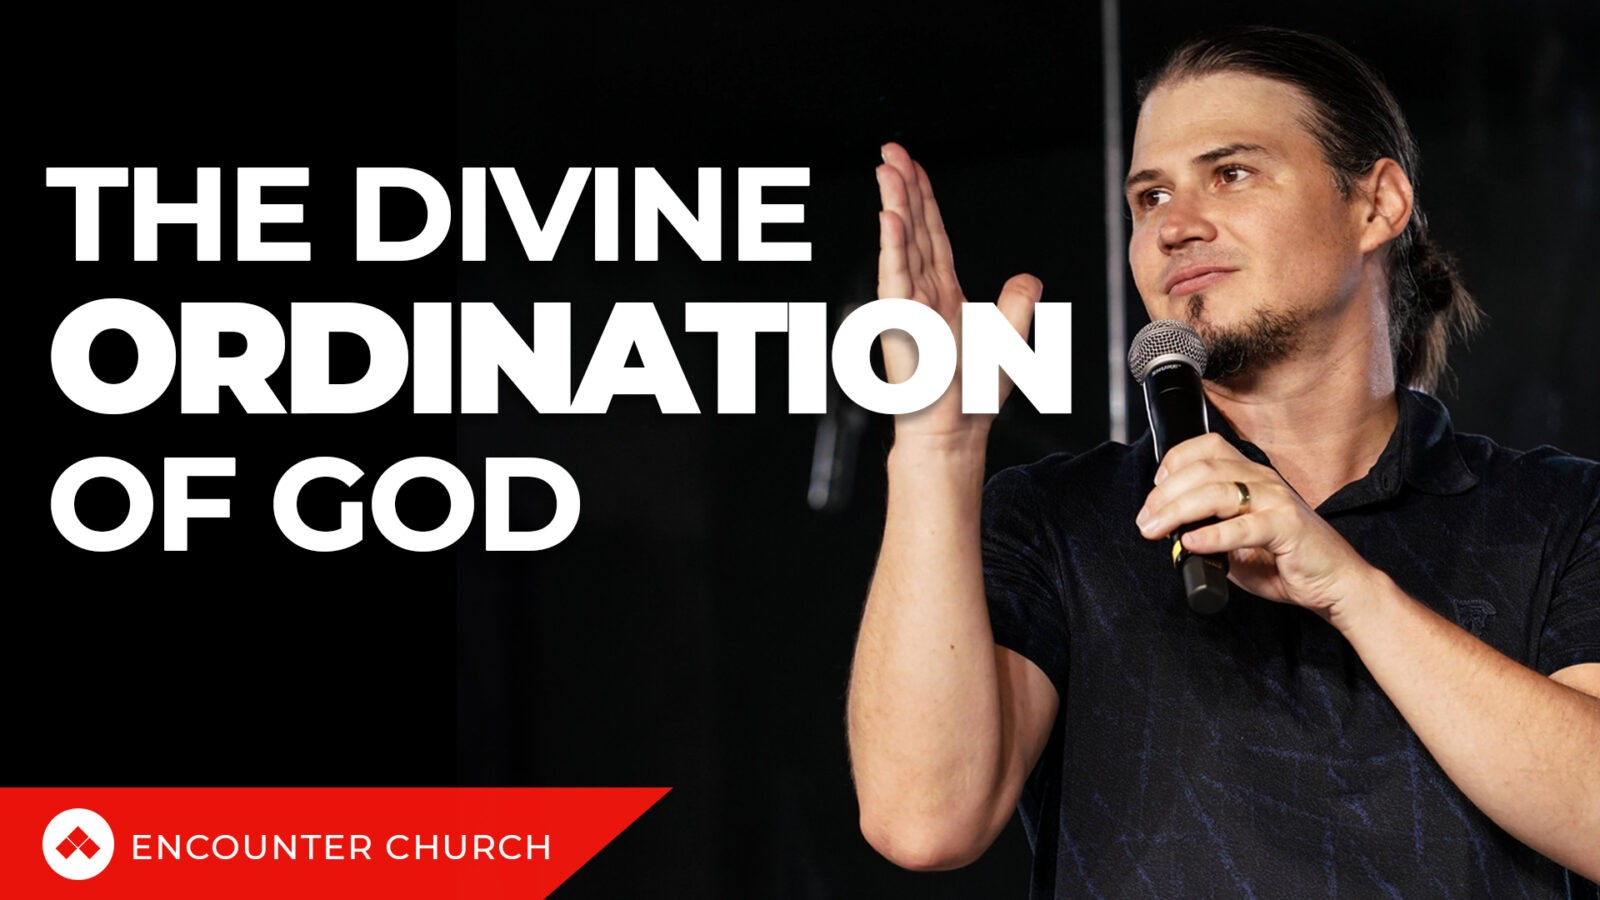 ENCOUNTER CONFERENCE – The Divine Ordination of God